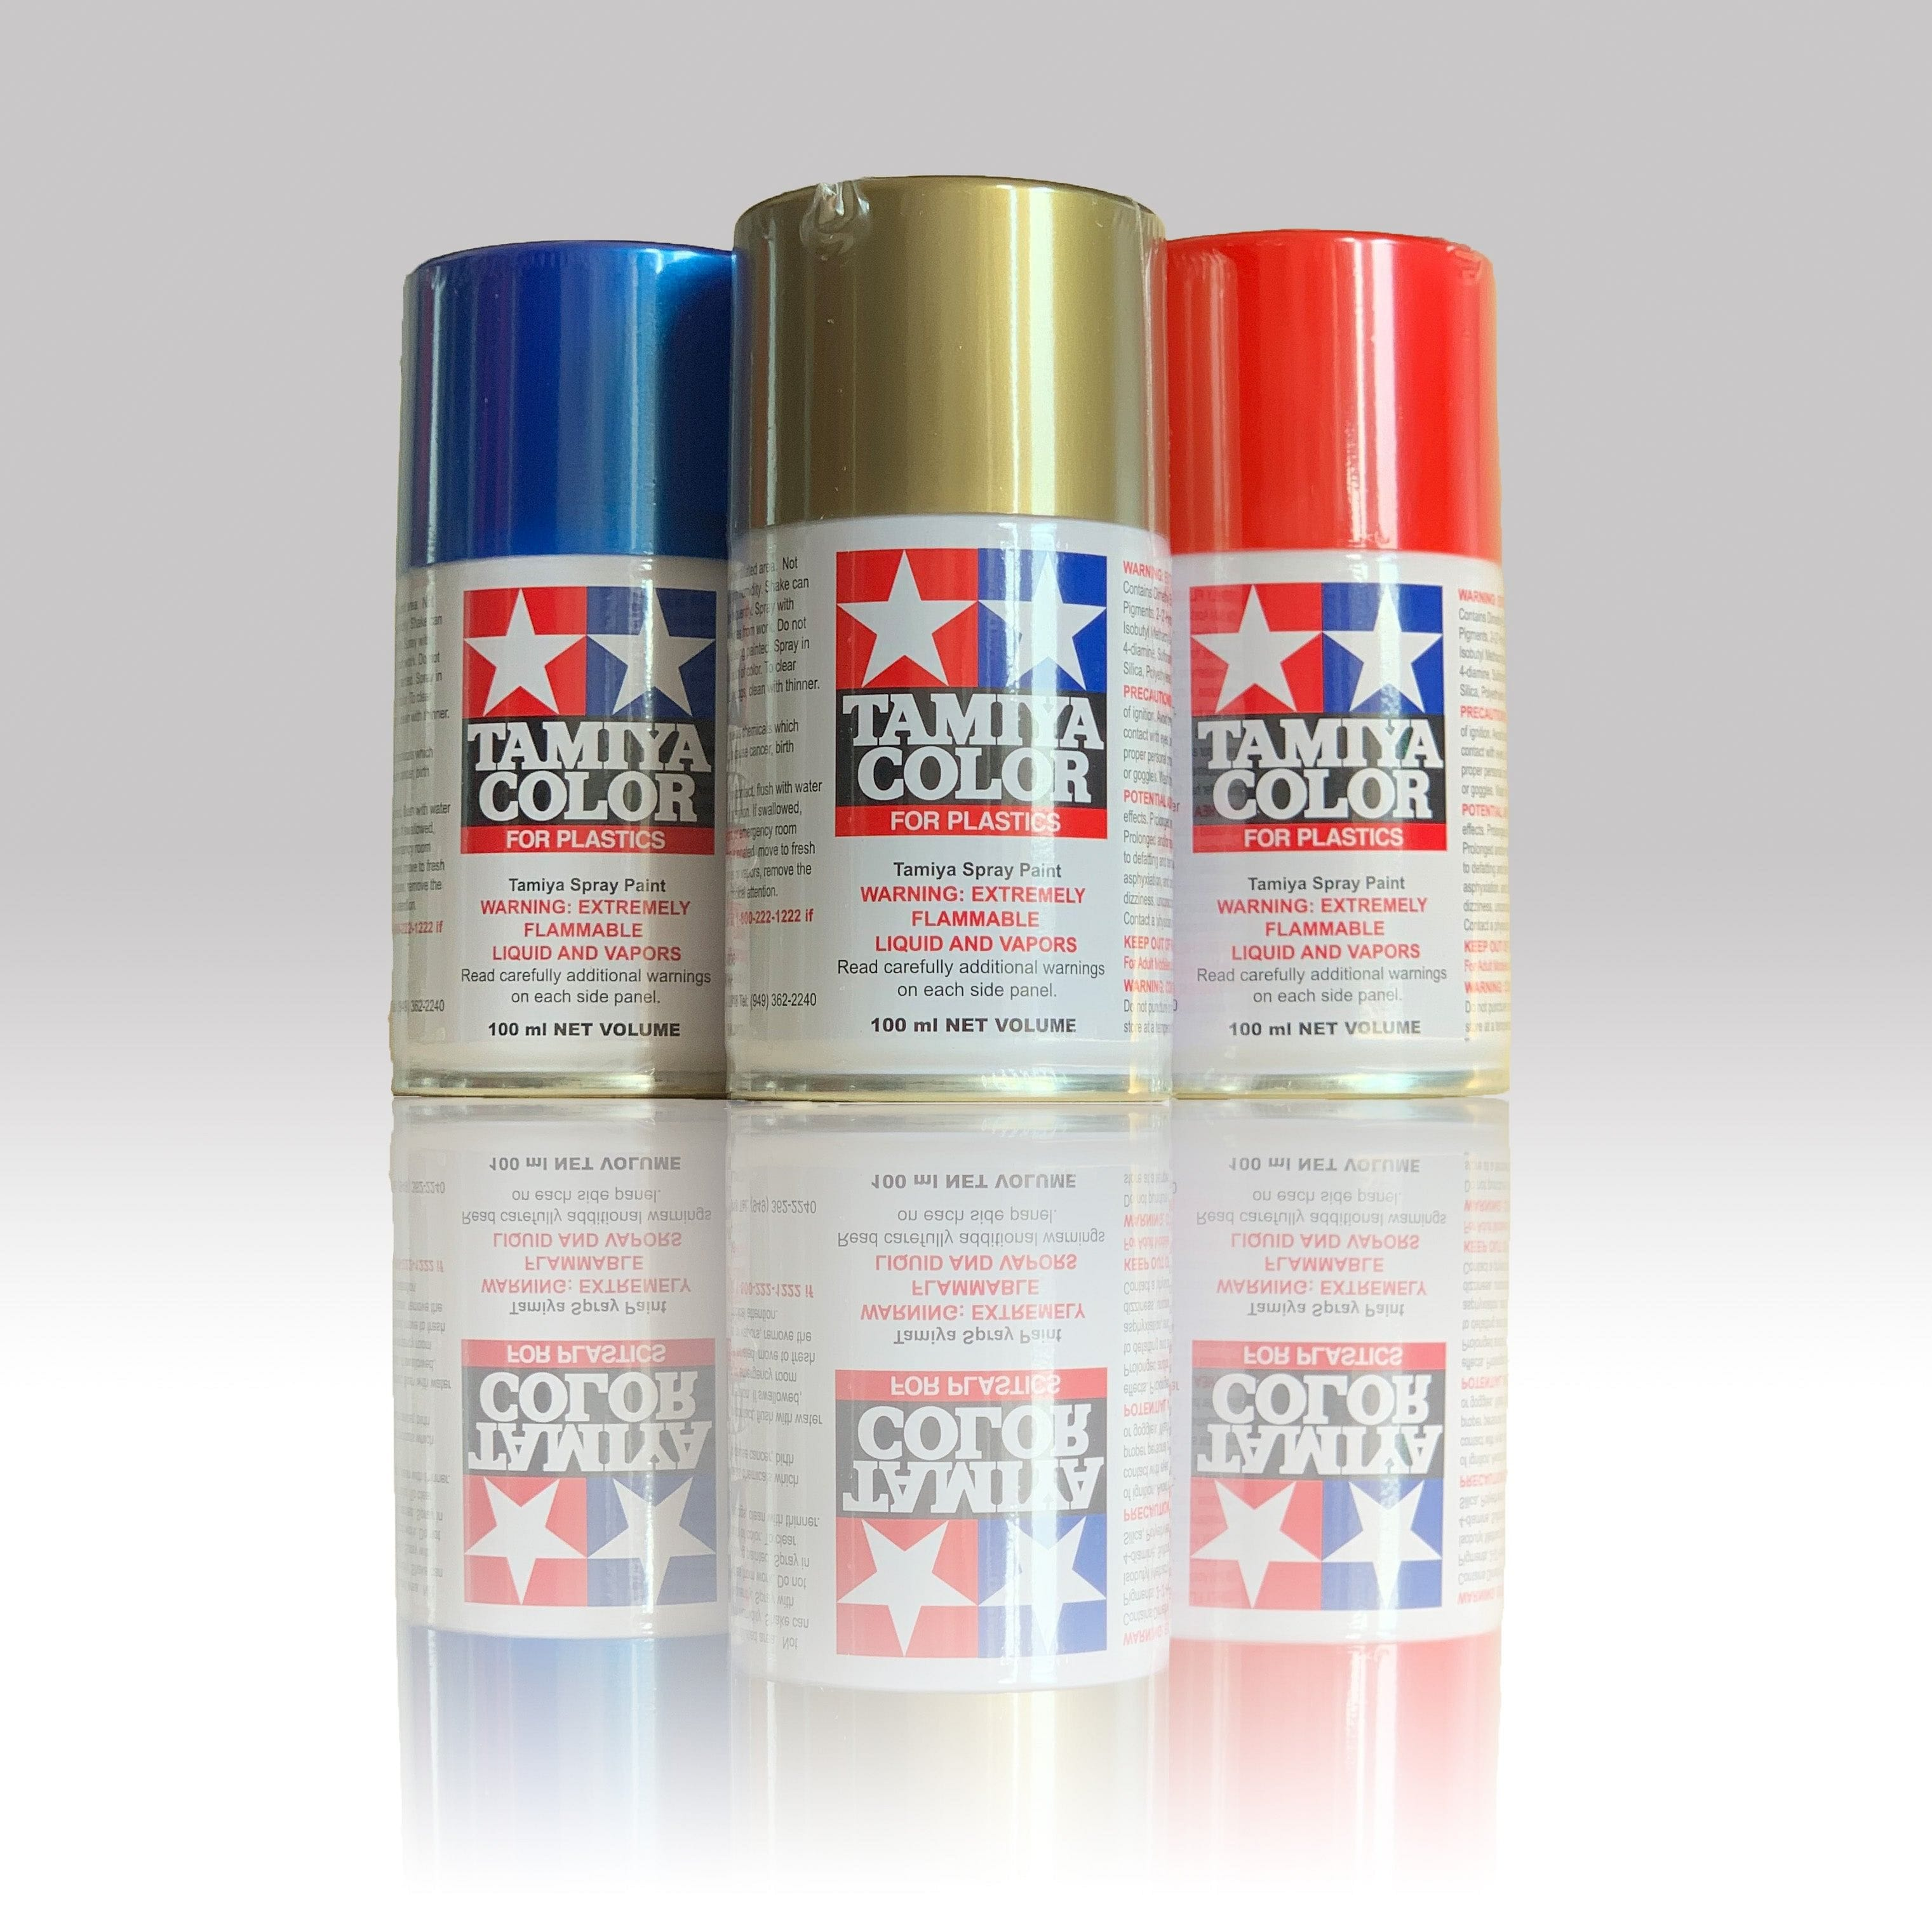 Tamiya Ts Lacquer Spray Paint For Plastic Model - 100ml